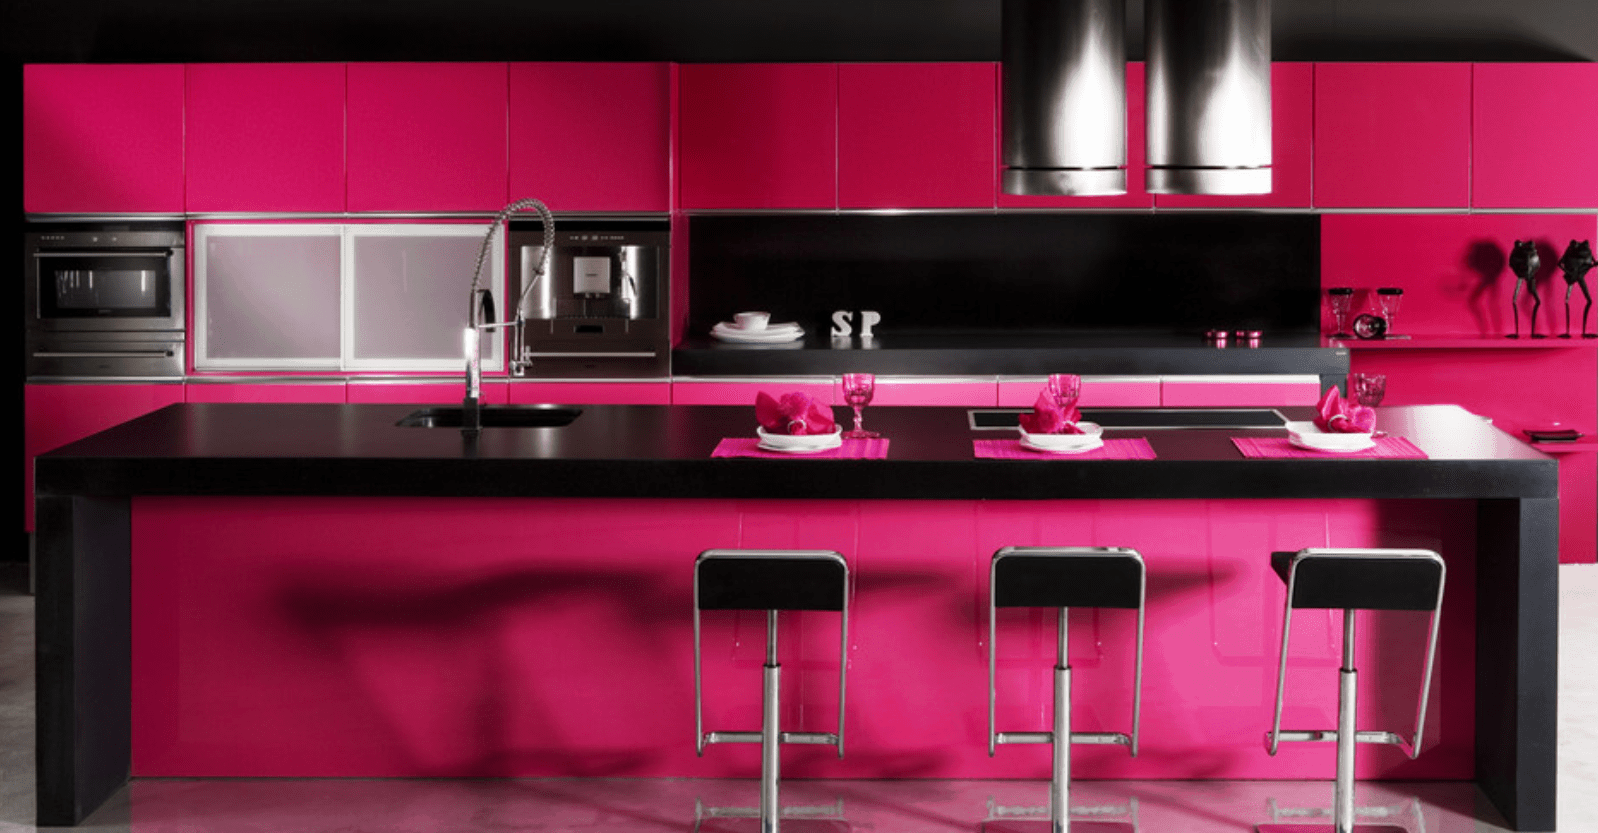 Hot pink kitchen with a black countertop breakfast island aligned with black metal bar stools. It is fitted with a sink and cooktop below round stainless steel vent hoods.